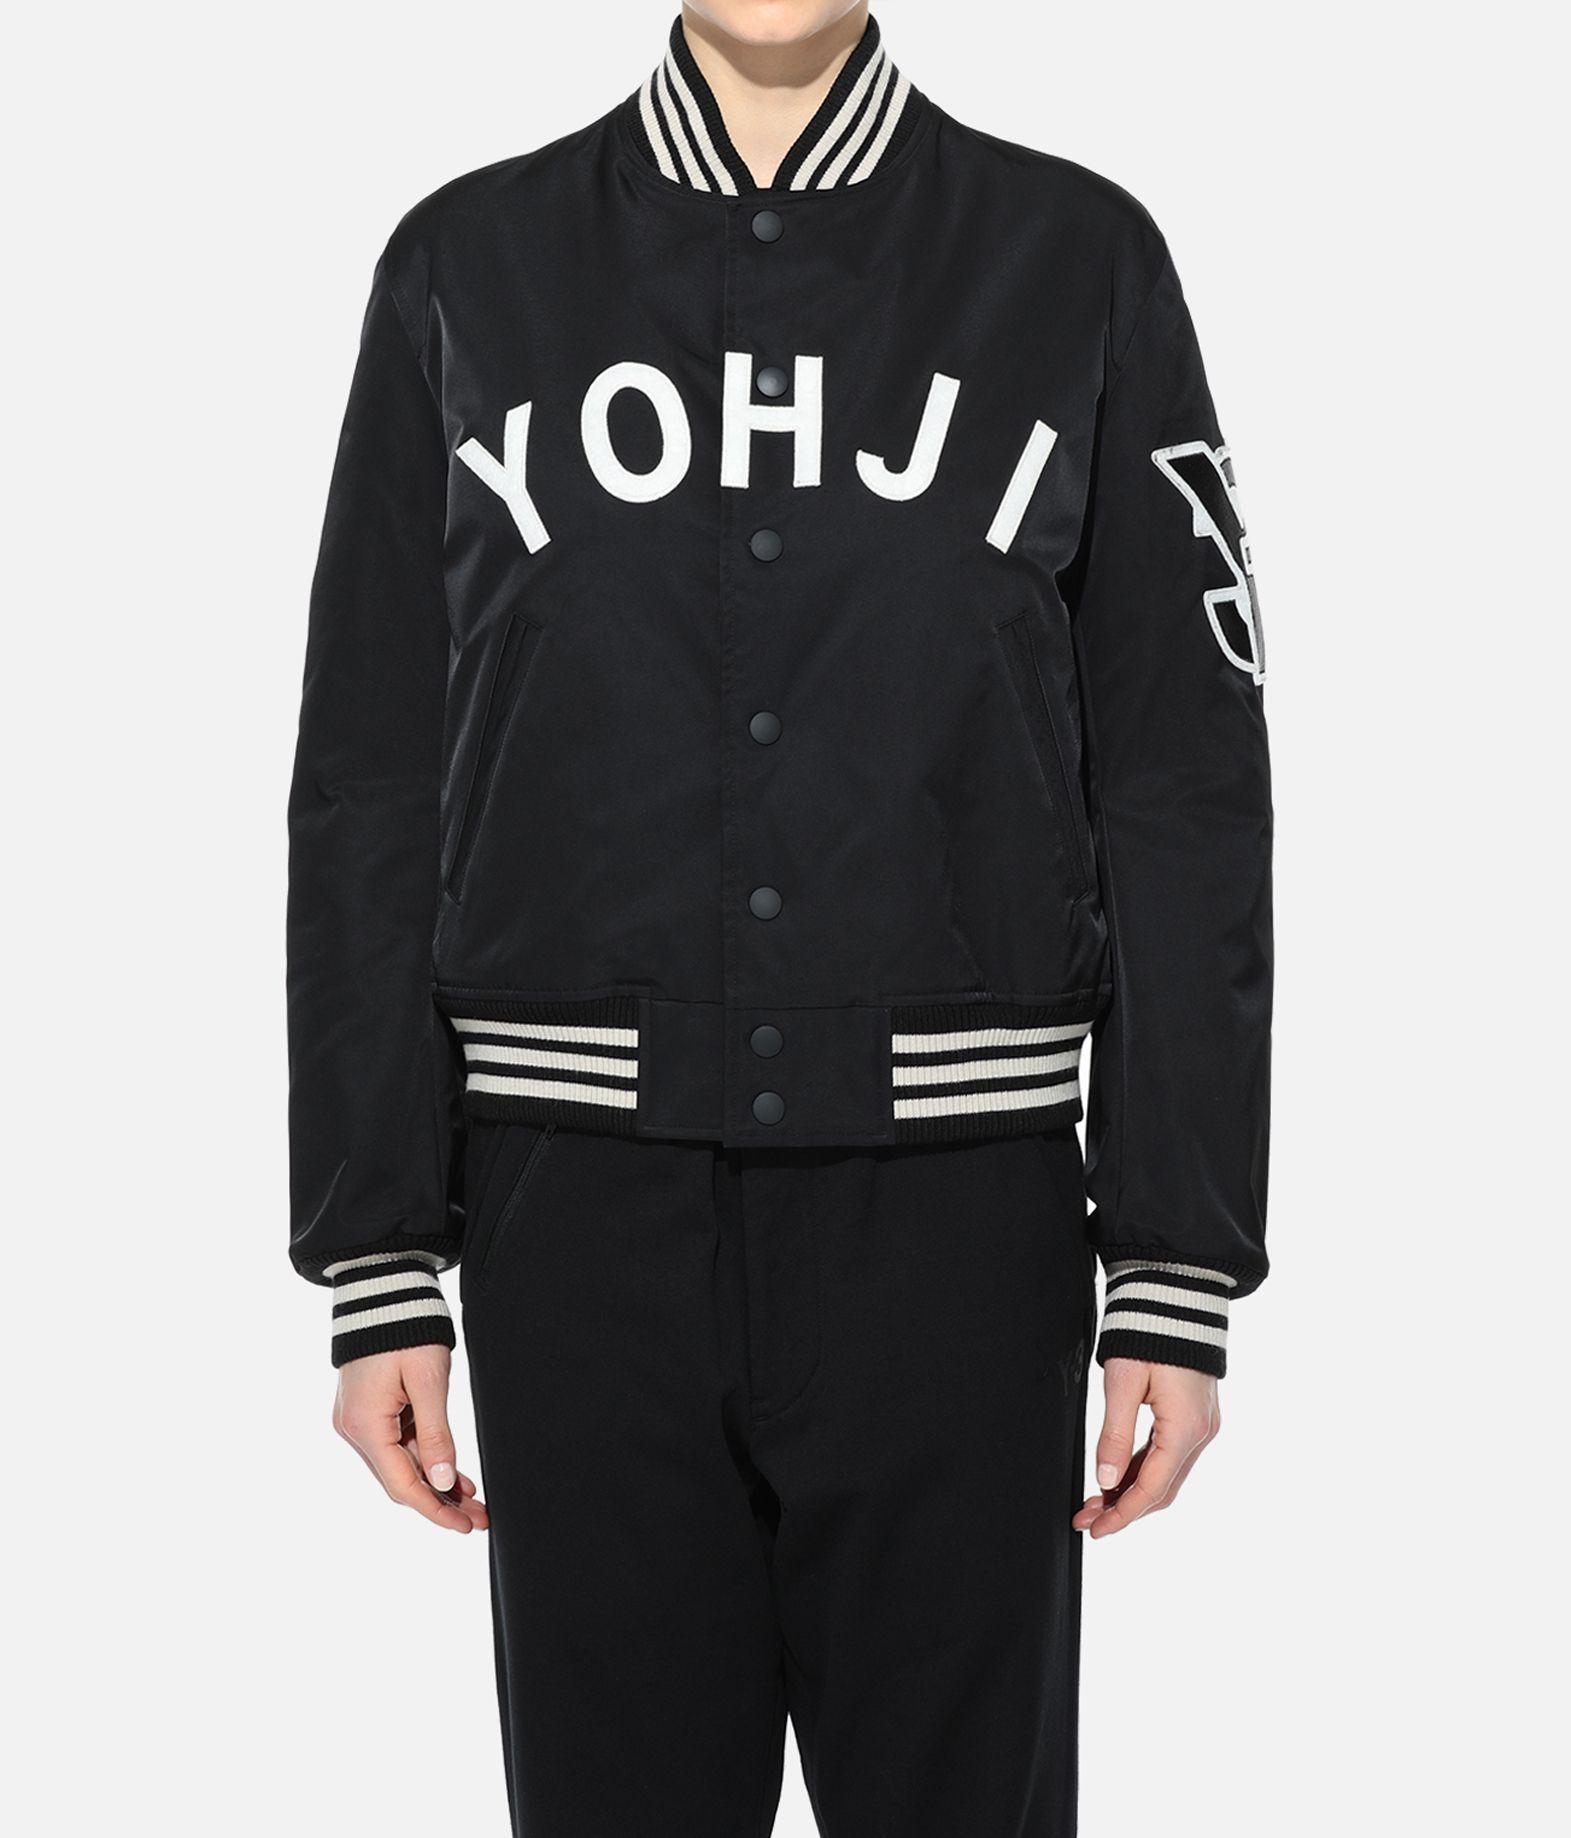 wholesale dealer 3c2da b3143 Y-3 Yohji Letters Bomber Jacket